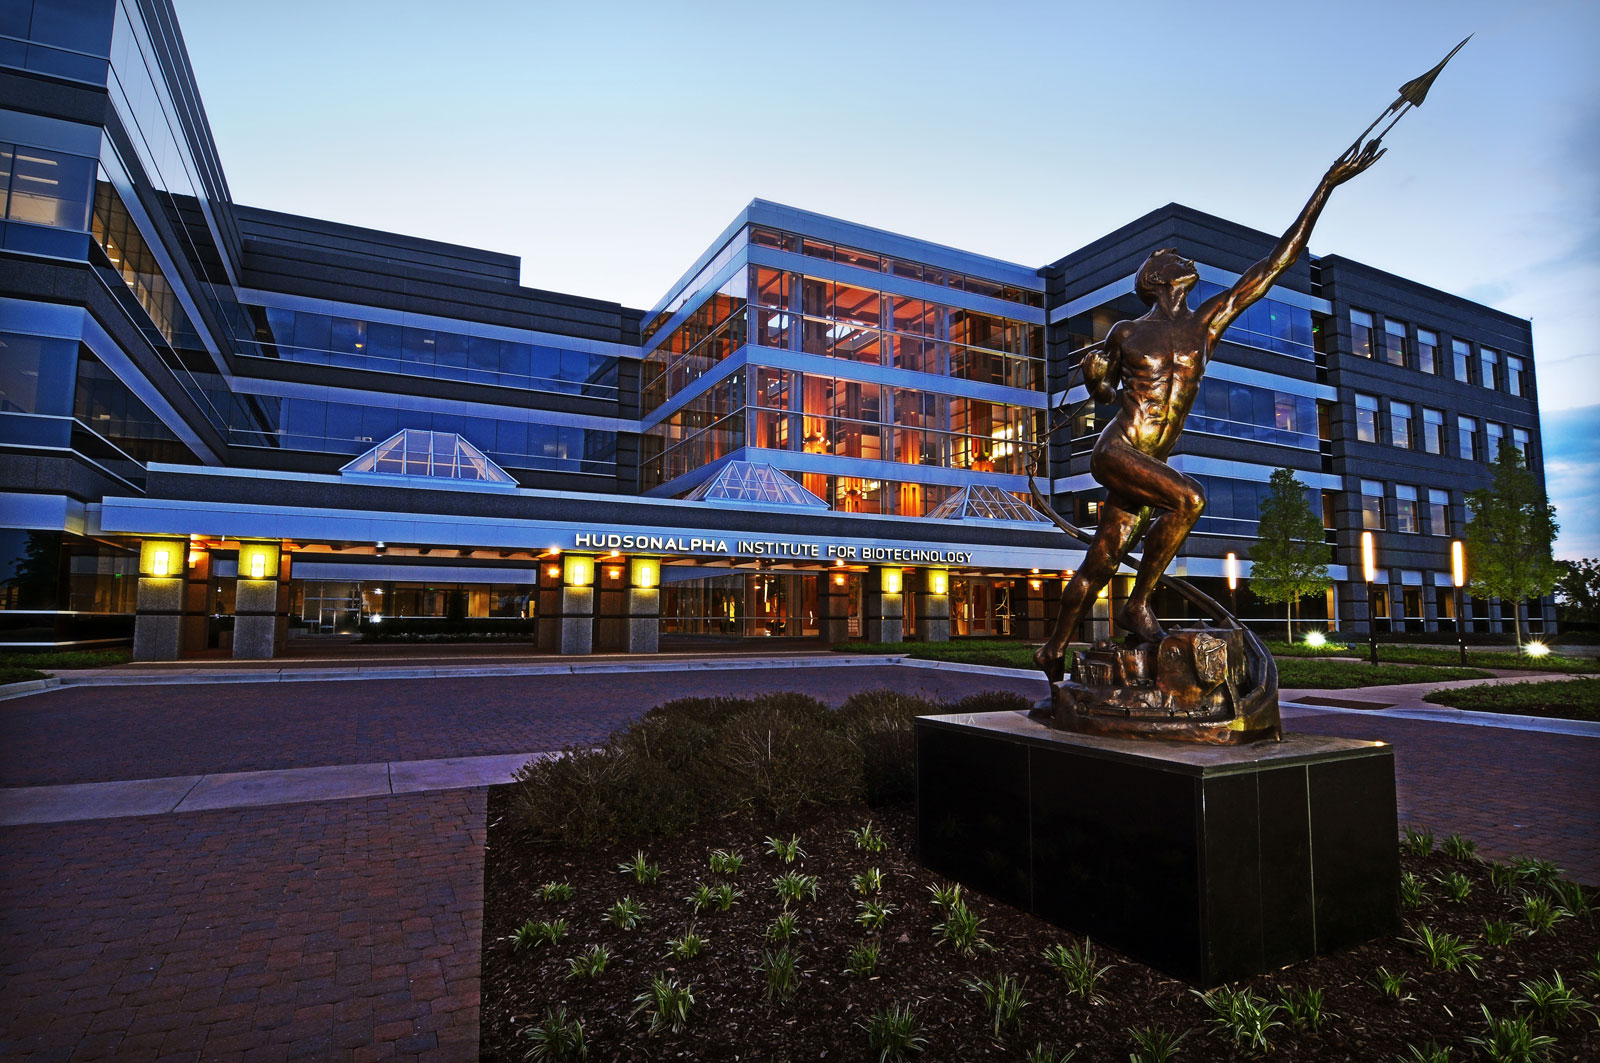 The bronze Power of Thought statue in front of HudsonAlpha